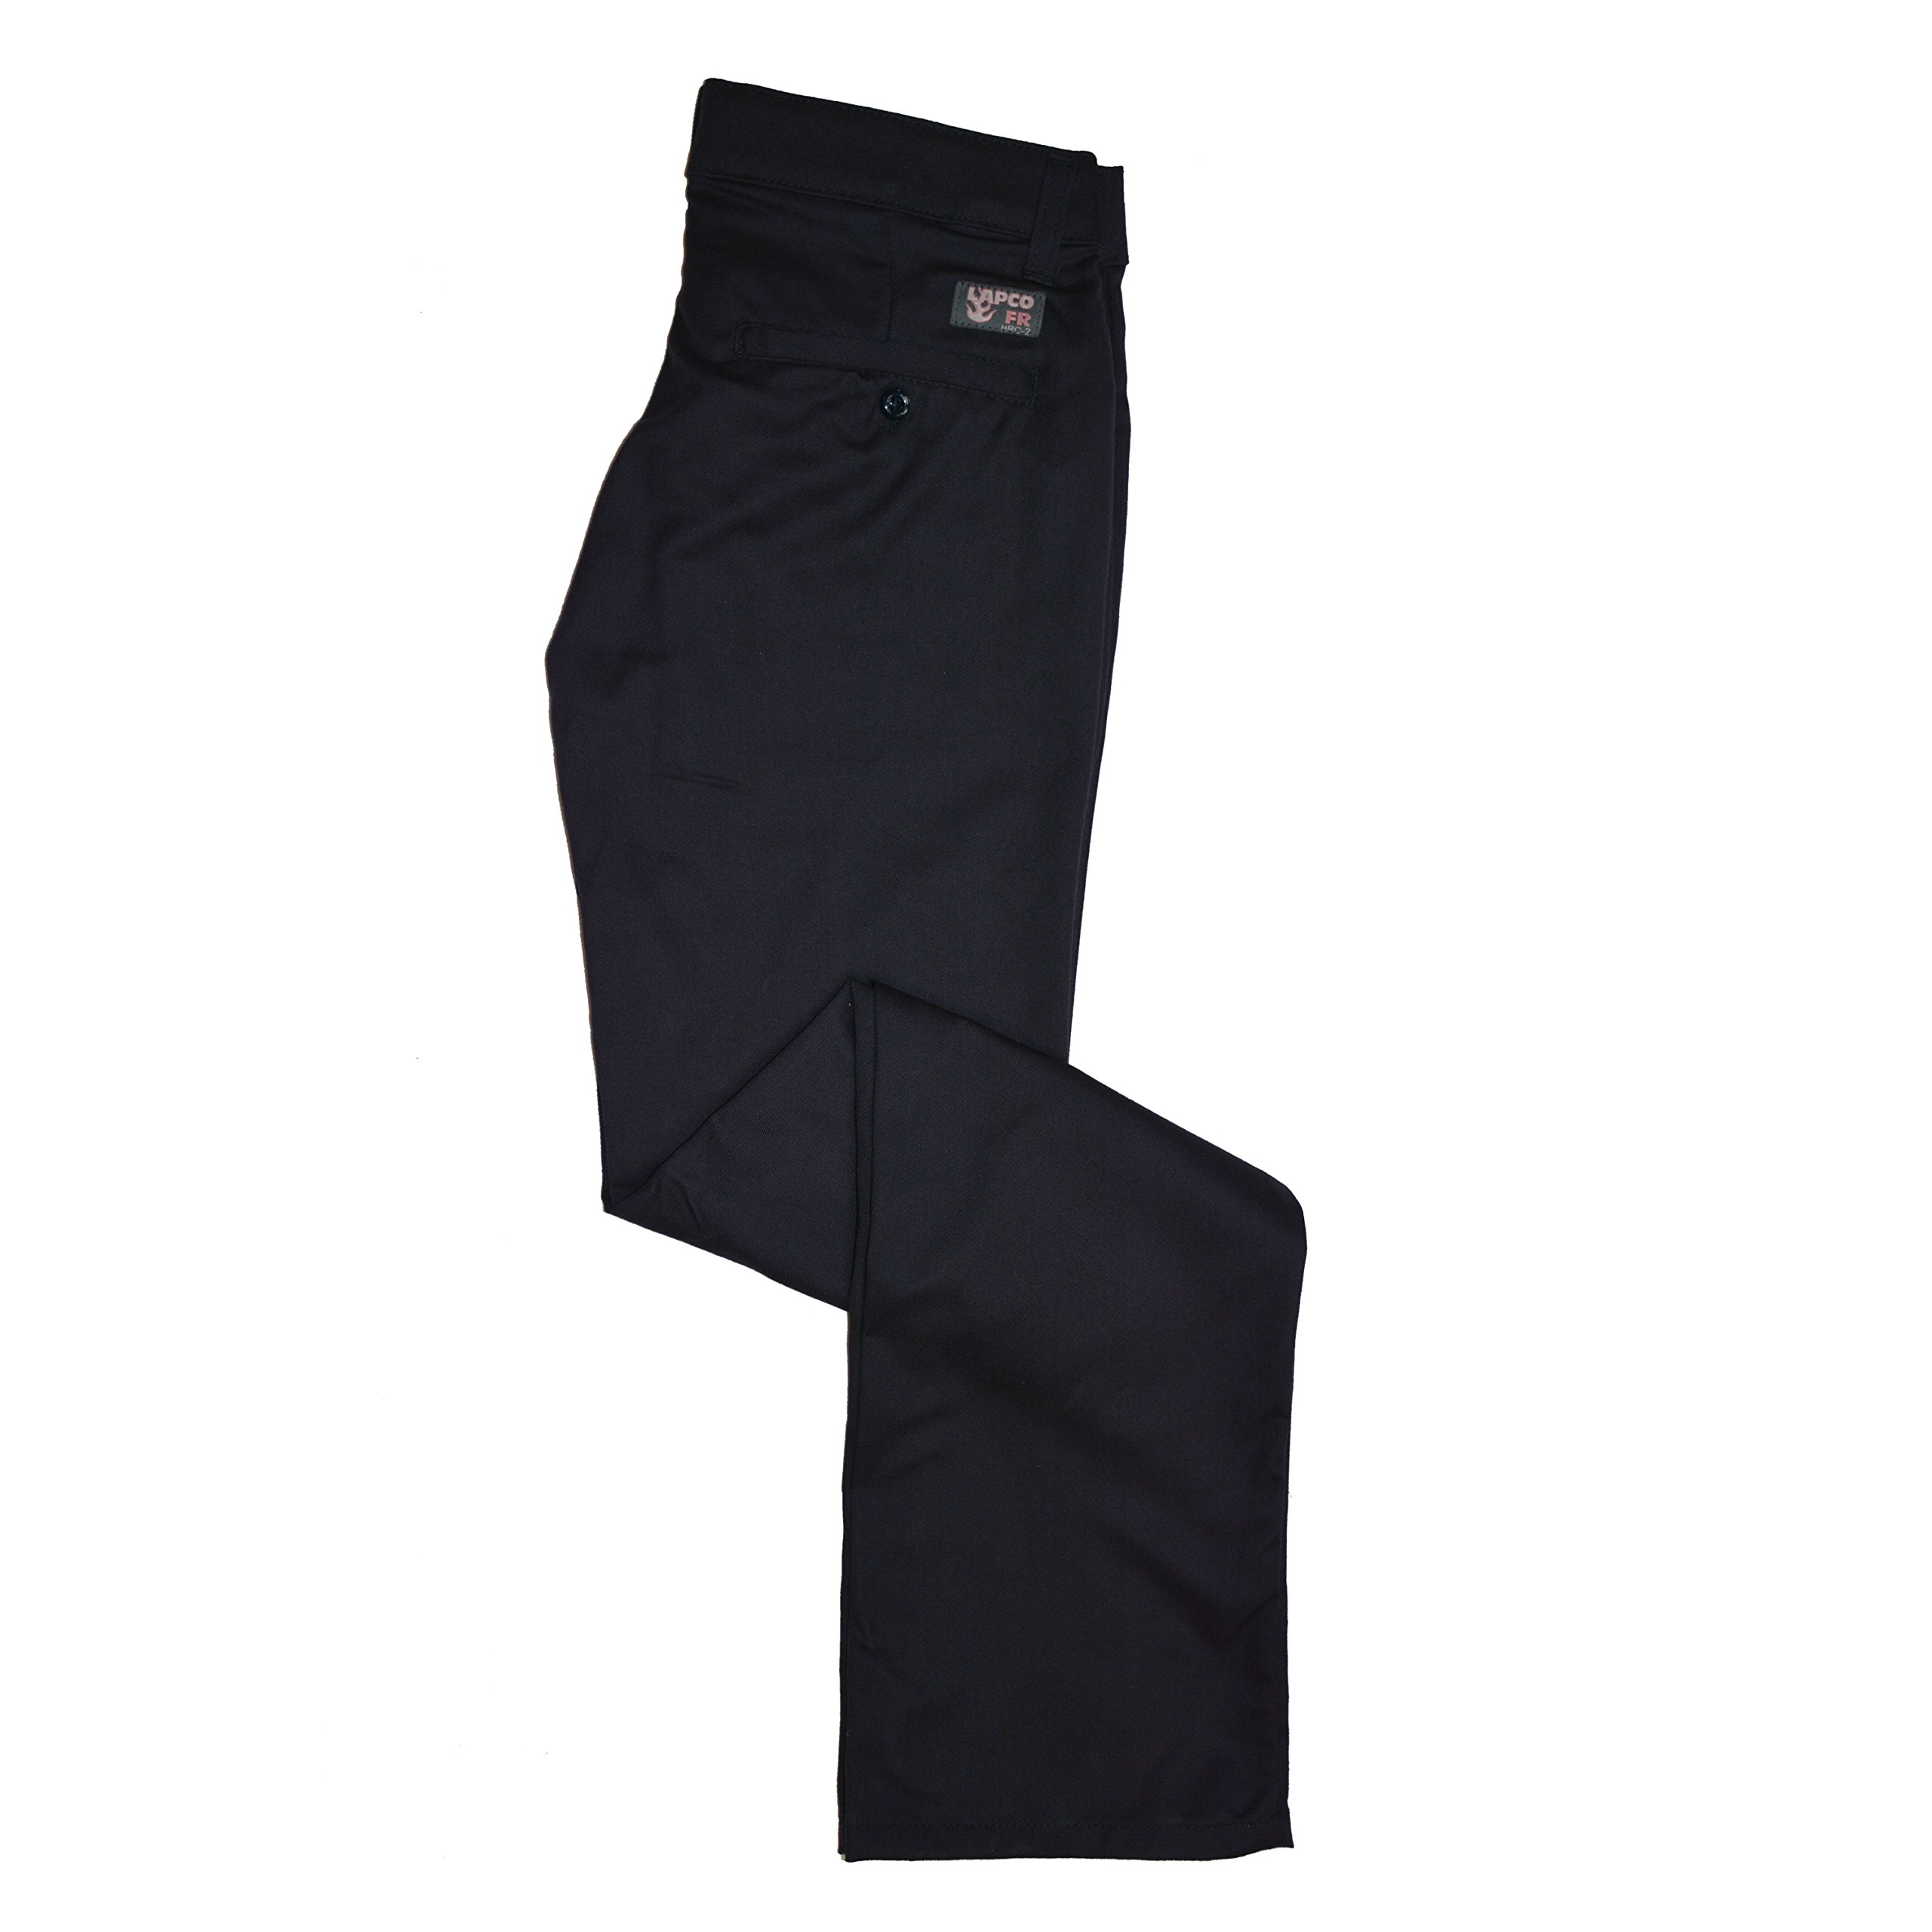 Lapco FR L-PFRACNY 4RG Ladies FR Advanced Comfort Uniform Pants, 88% Cotton, 12% Nylon, 7 oz, 4RG, Navy by Lapco FR (Image #1)